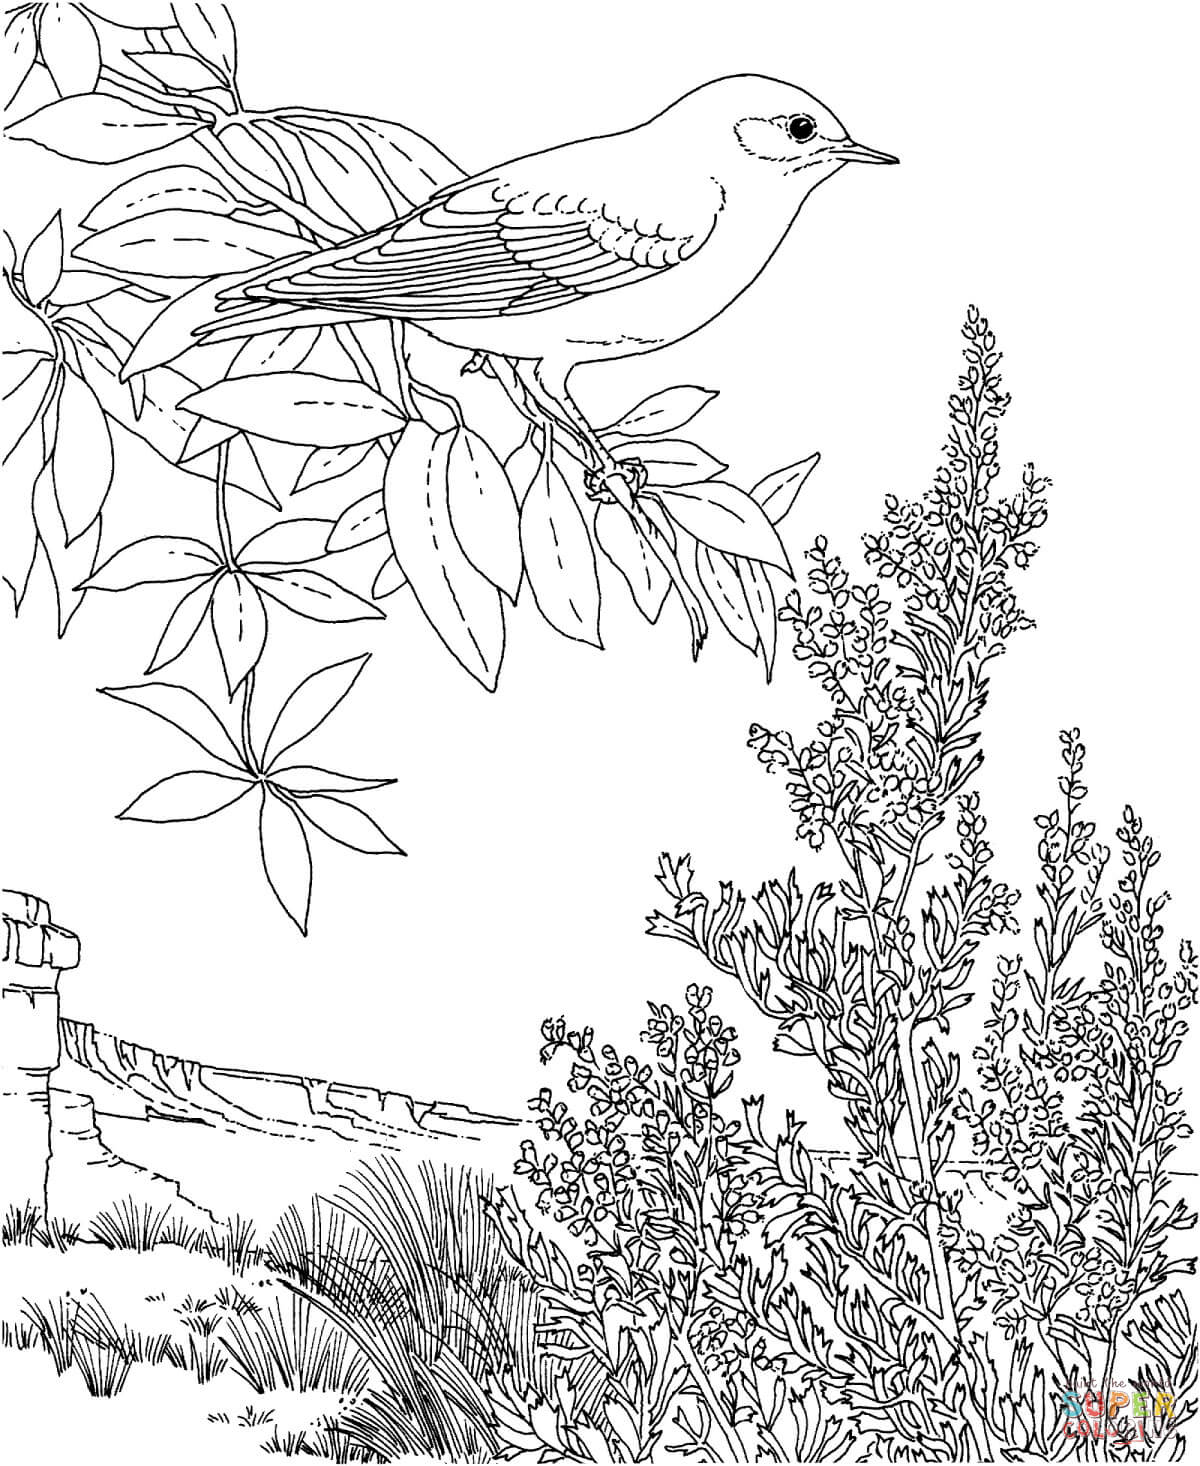 Eastern Bluebird coloring #1, Download drawings